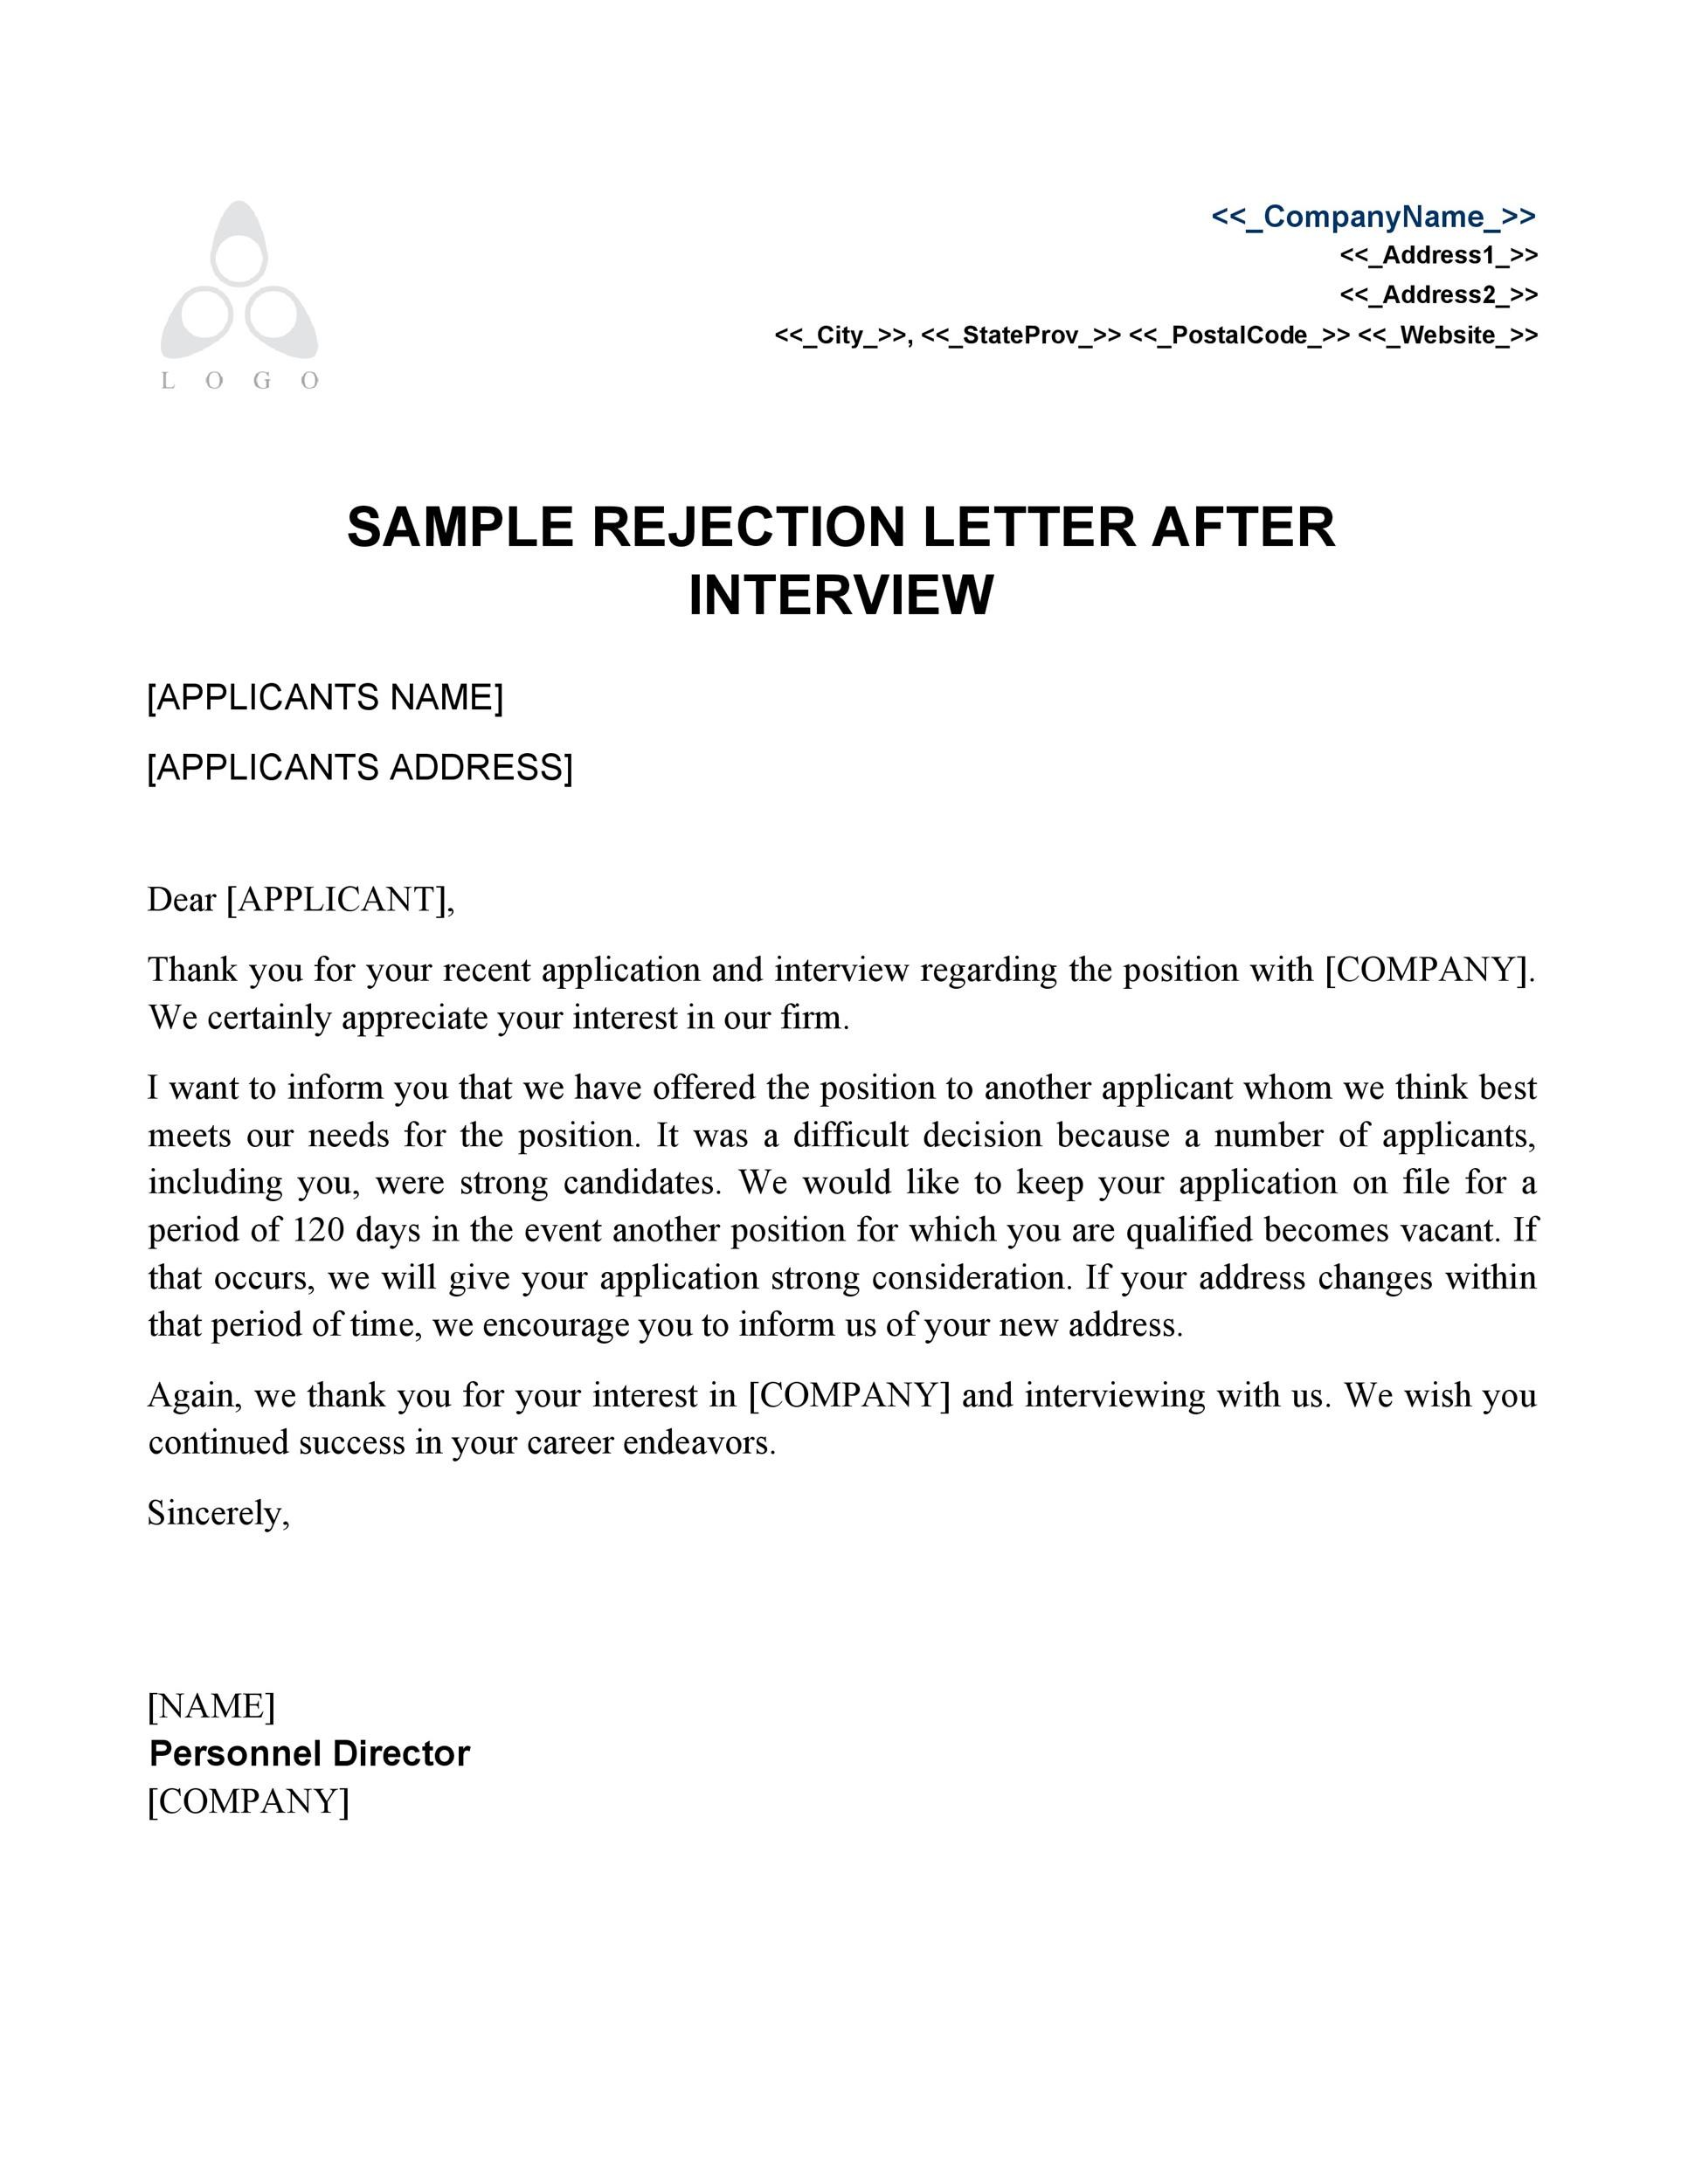 39 job rejection letter templates samples template lab free rejection letter 33 thecheapjerseys Images